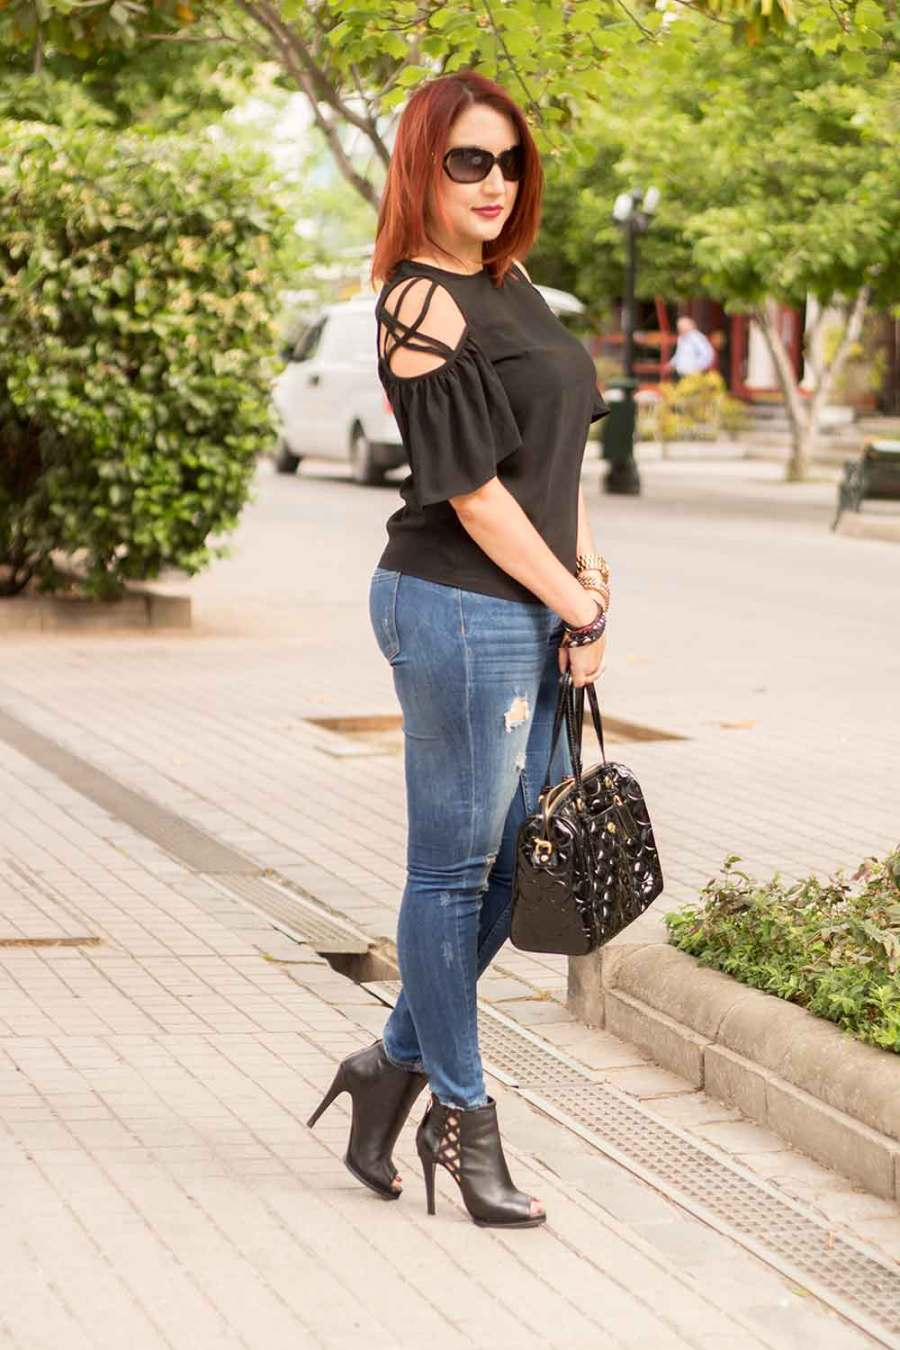 luce-tus-hombros-con-un-off-shoulder-mas-sutil-tu-guia-fashion-2